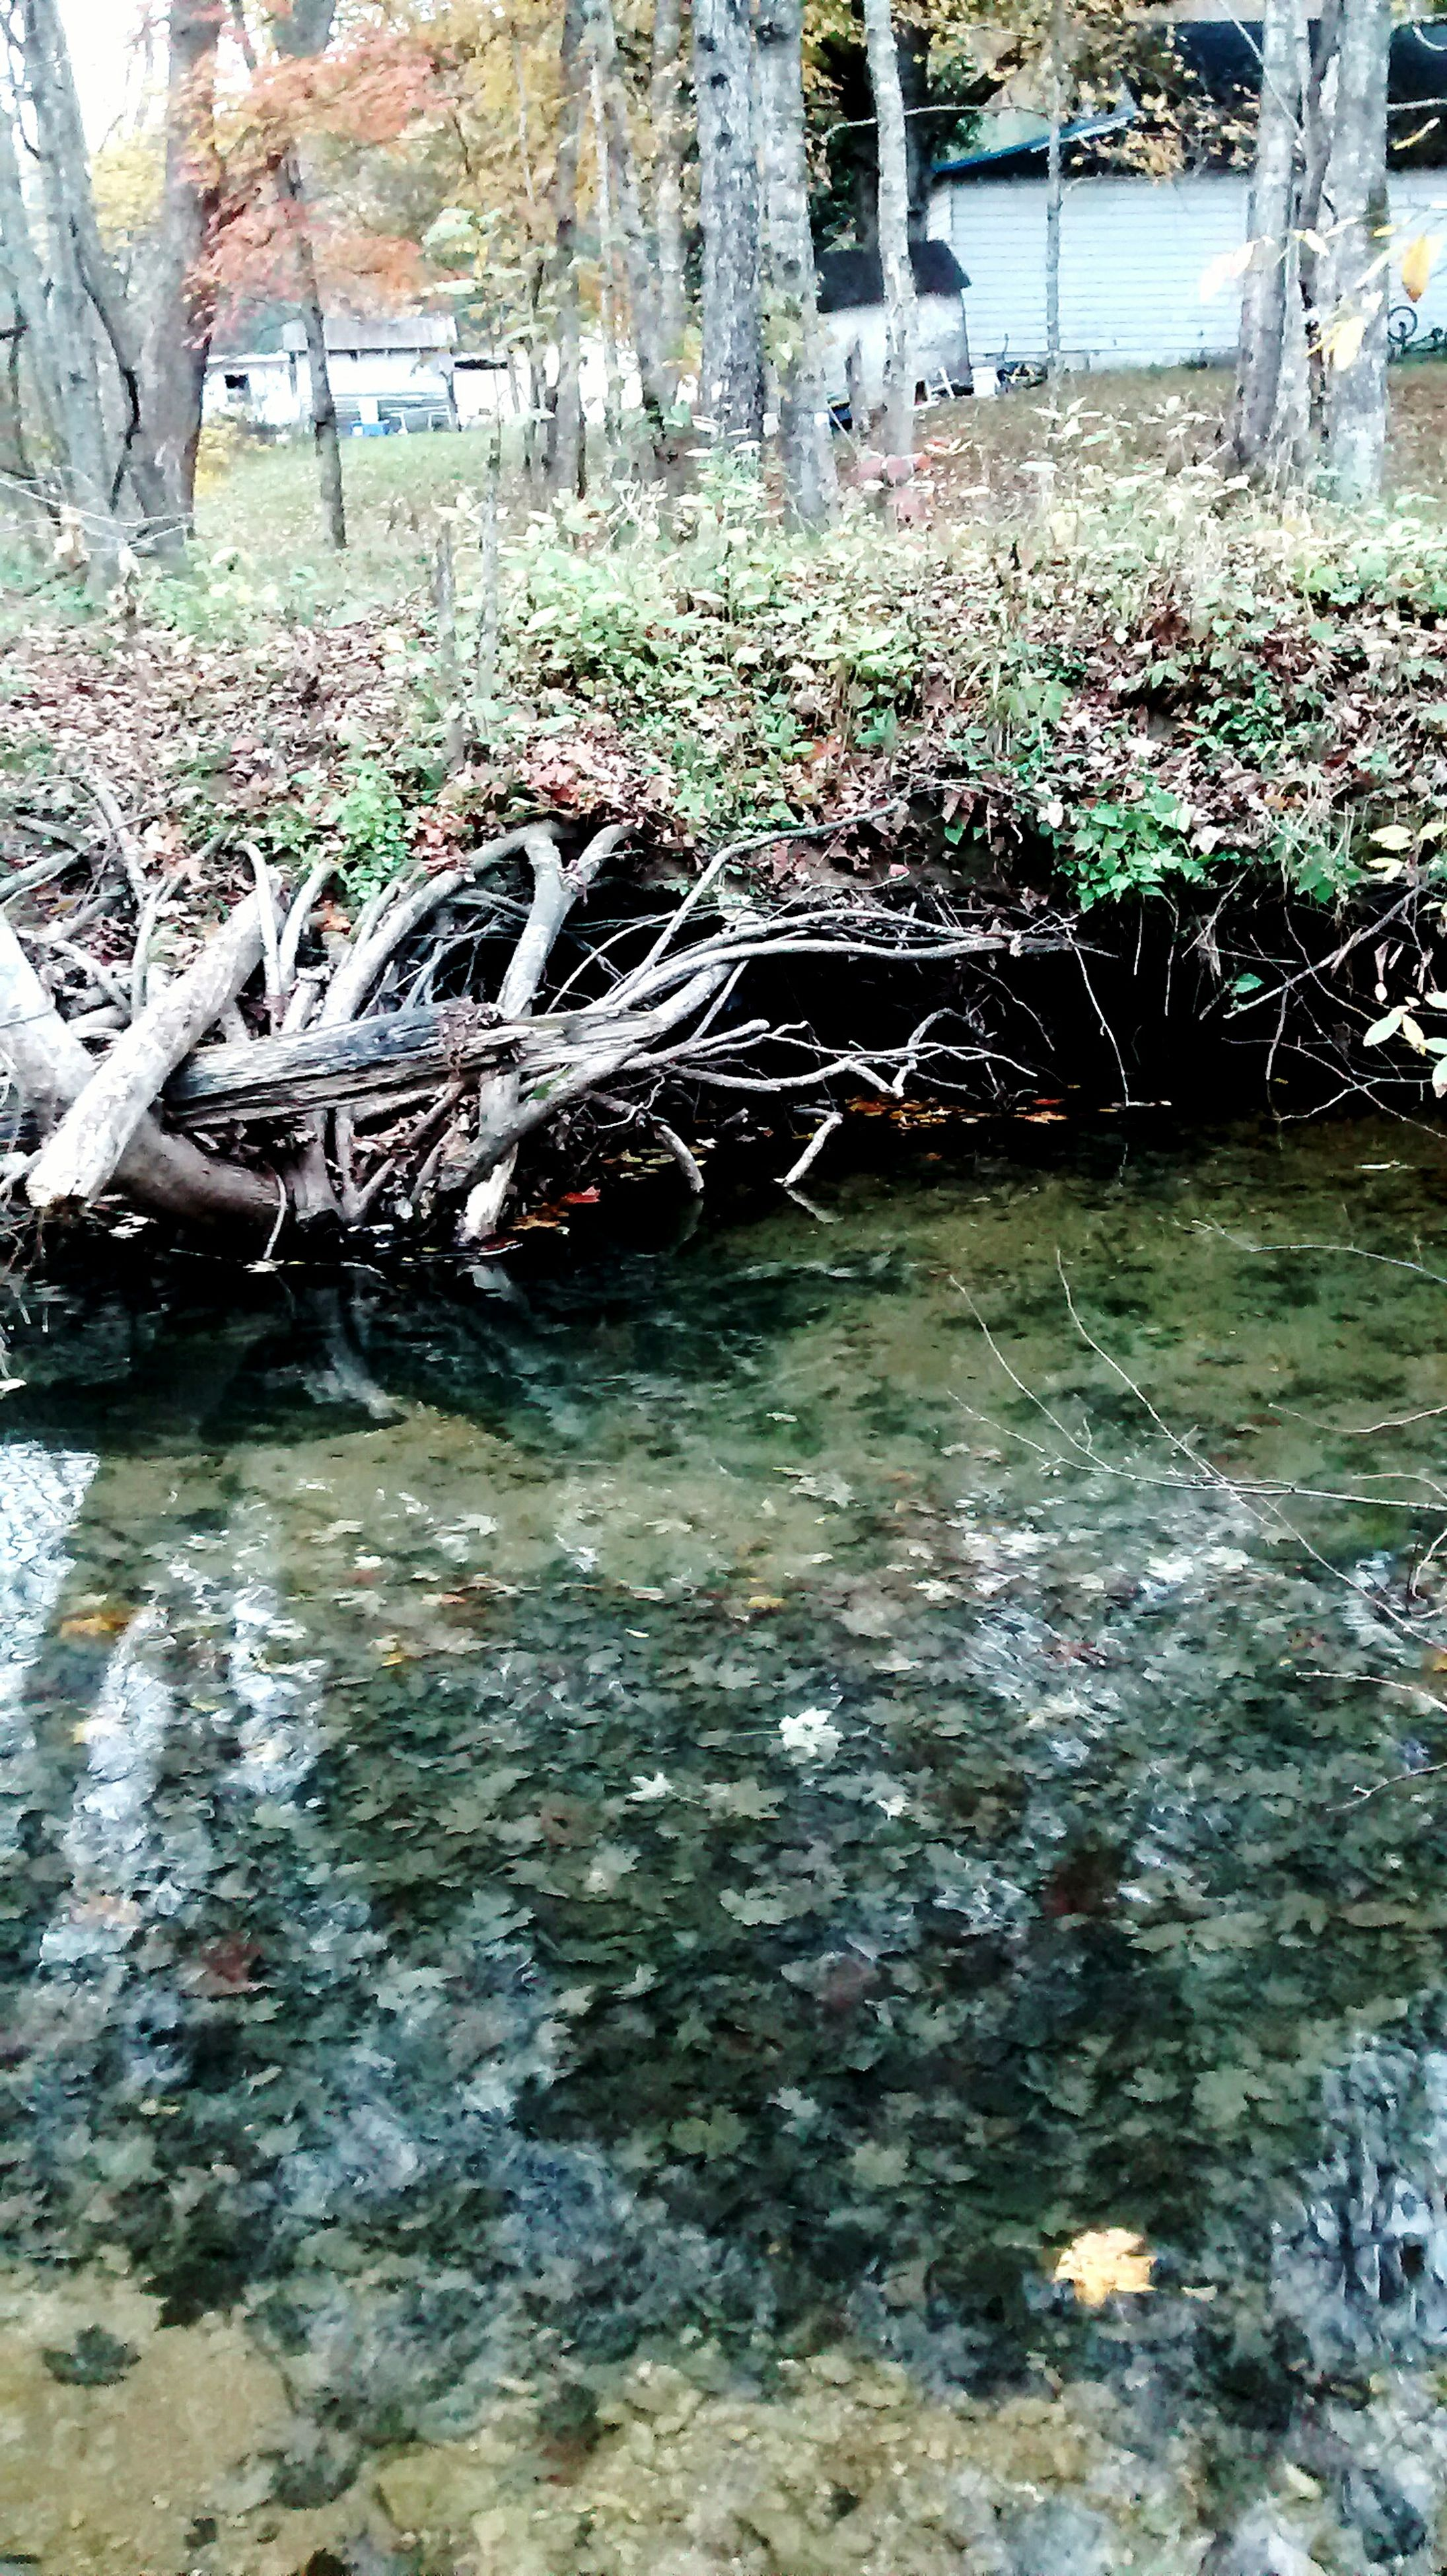 water, tree, mode of transport, transportation, nature, day, plant, outdoors, river, waterfront, no people, sunlight, tranquility, park - man made space, growth, bicycle, reflection, pond, lake, branch